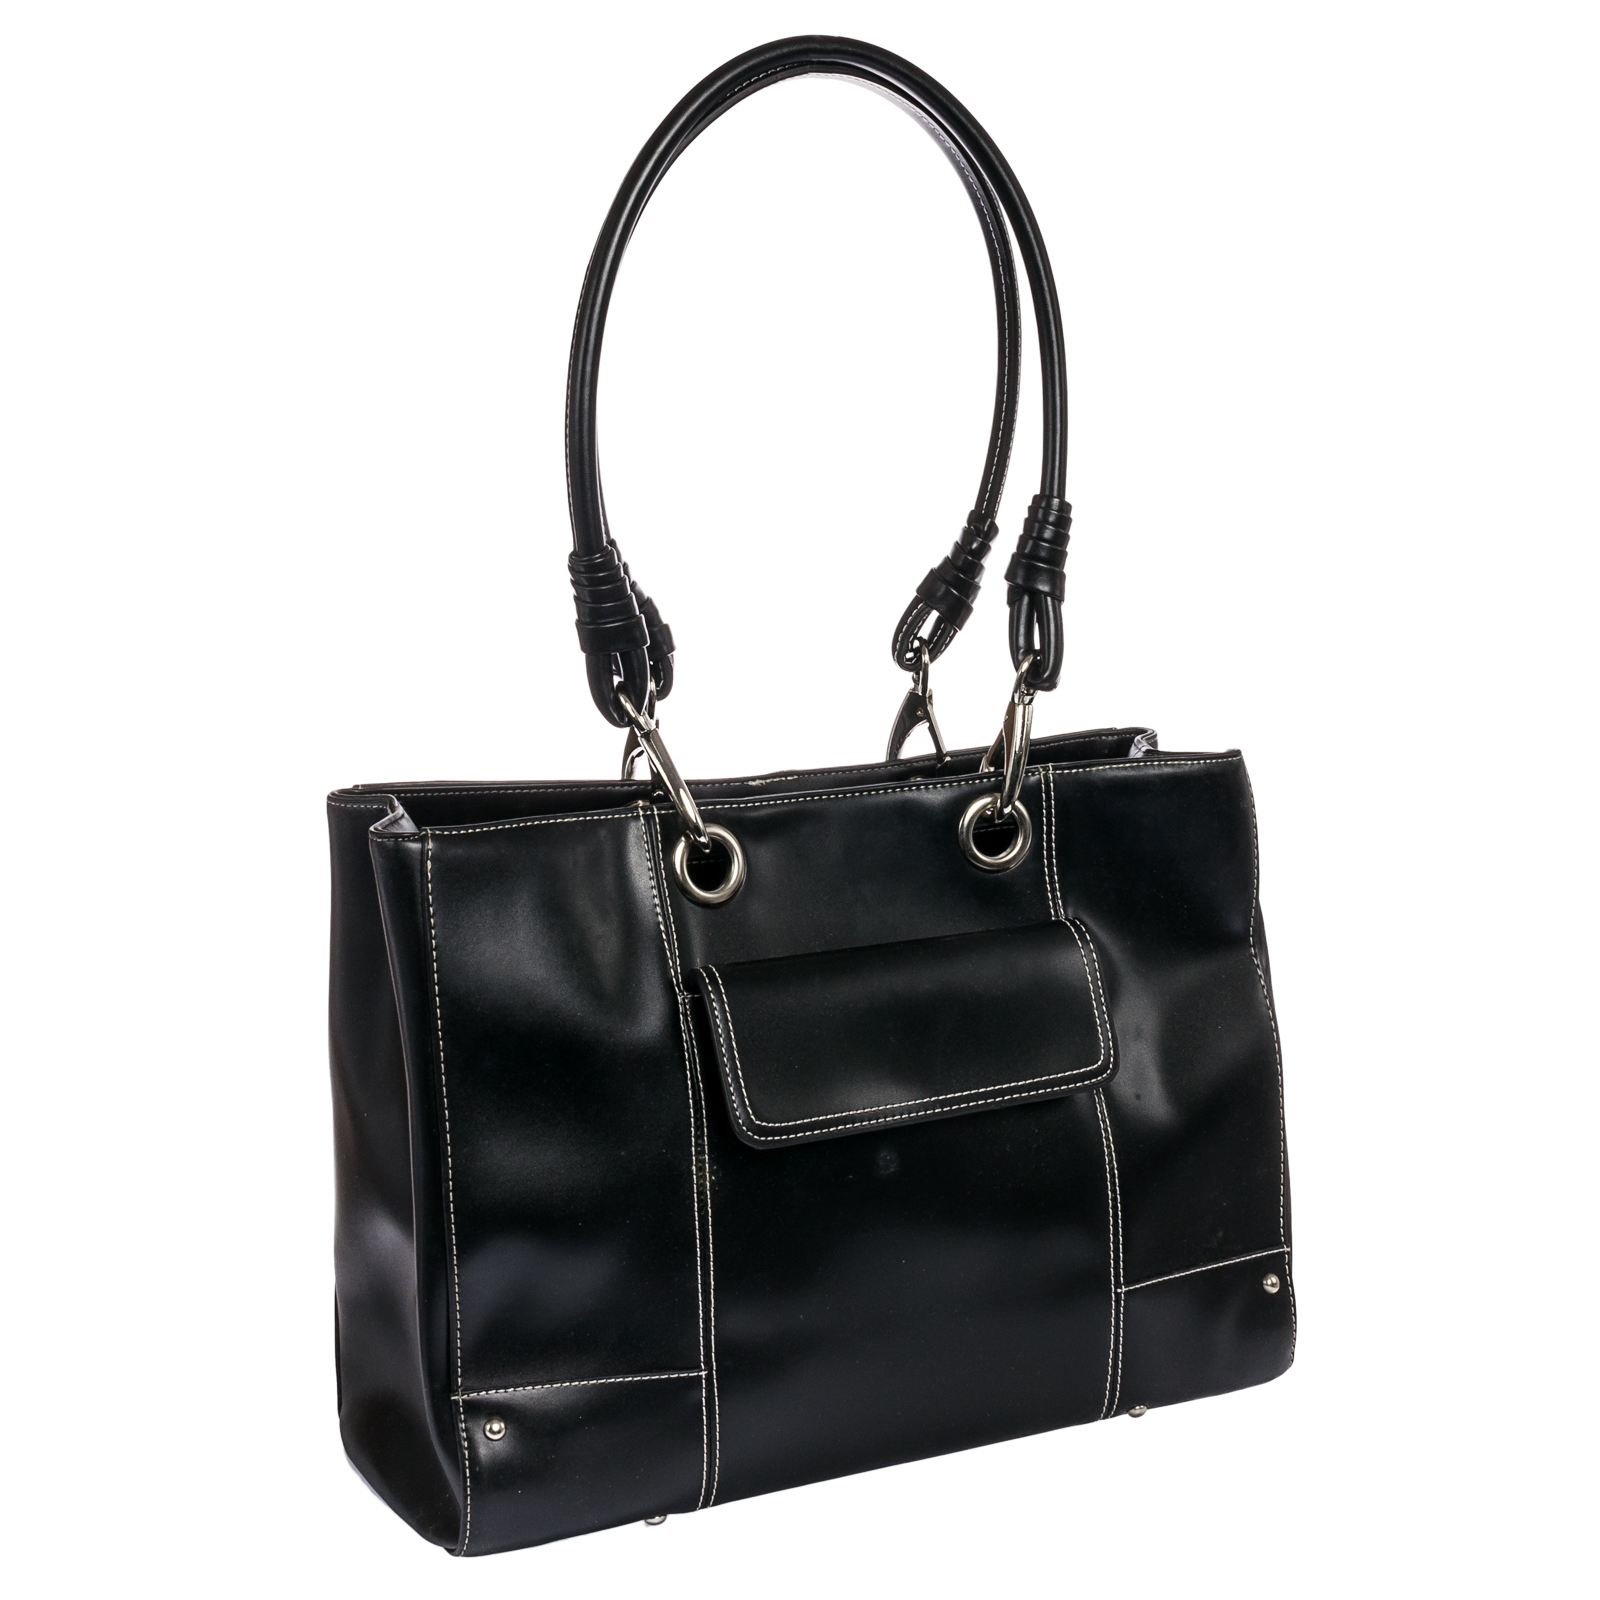 Mcklein Black Ultra Smooth High Gloss Faux Leather Serena Laptop Tote Hand Bag